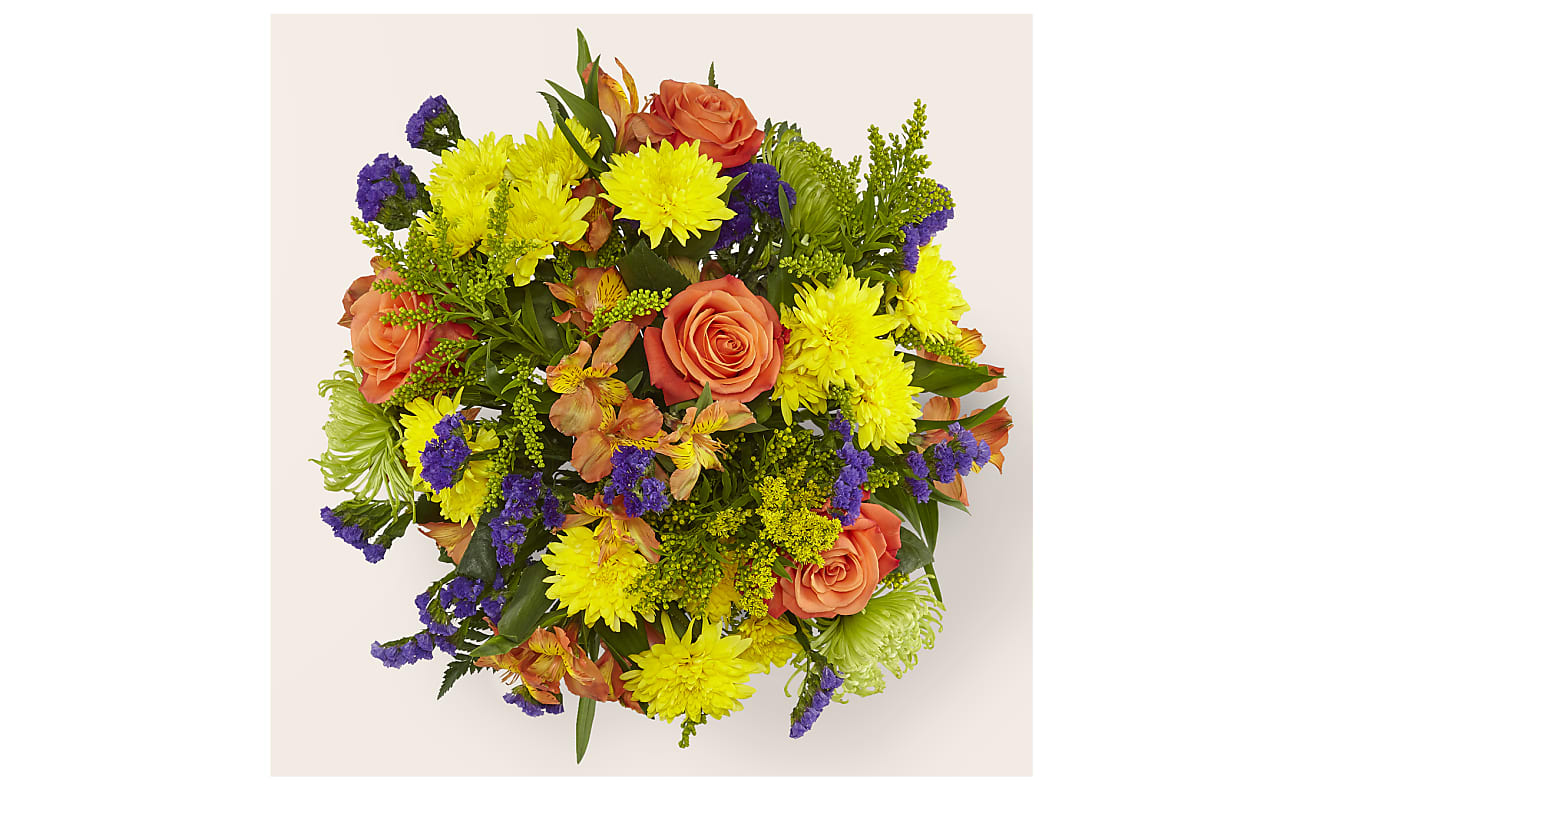 Marmalade Skies Bouquet - Image 2 Of 2